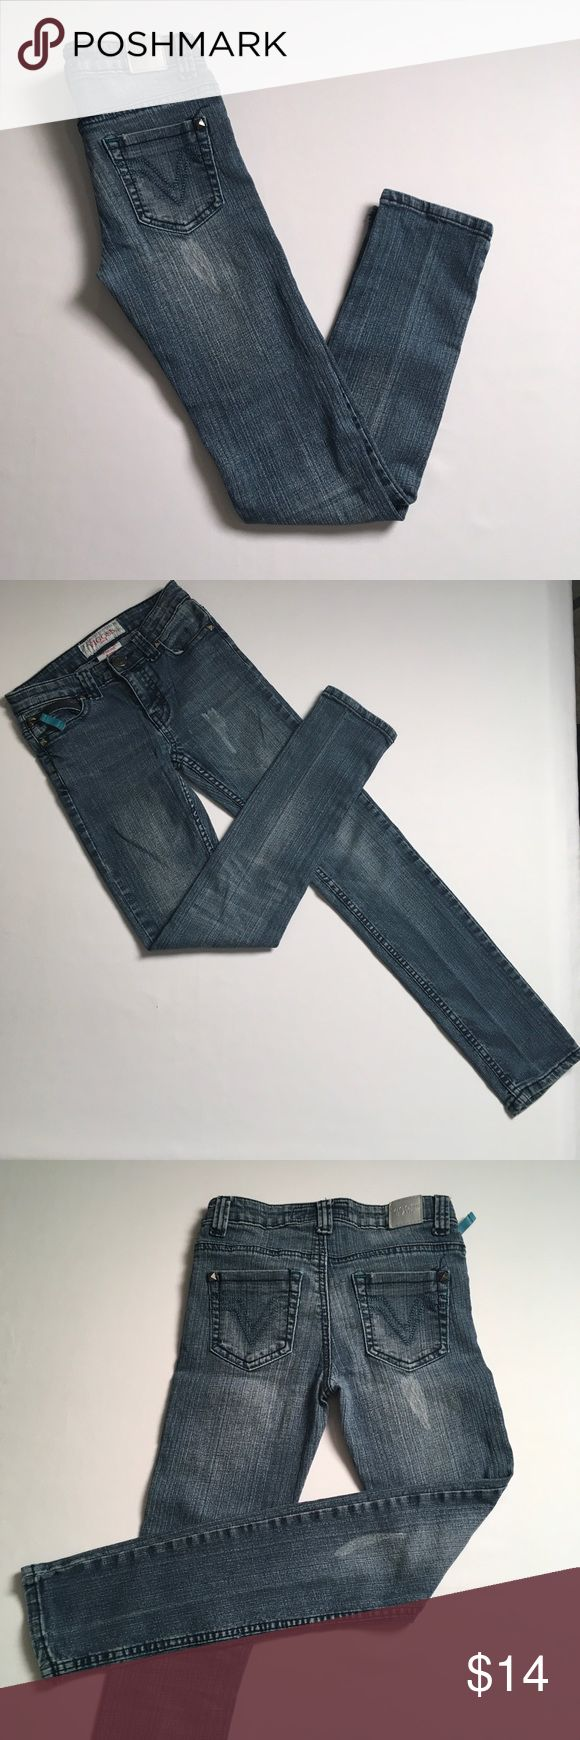 """Young ladies Vigoss Skinny Jeans Super cute distressed Vigoss Skinny Jeans  5 pockets Front 5th pocket has a cute zipper with turquoise tag flap Designs on back of pockets in a turquoise stitching Girls Size 12 Waist 24"""" Rise 7.5"""" Inseam 27"""" 55% ramie, 24% cotton , 20% polyester and 1% spandex  Non smoking environment  No stains, snags or damage  Thanks for Looking , Molly M 1289/ W 1 Vigoss Bottoms Jeans"""